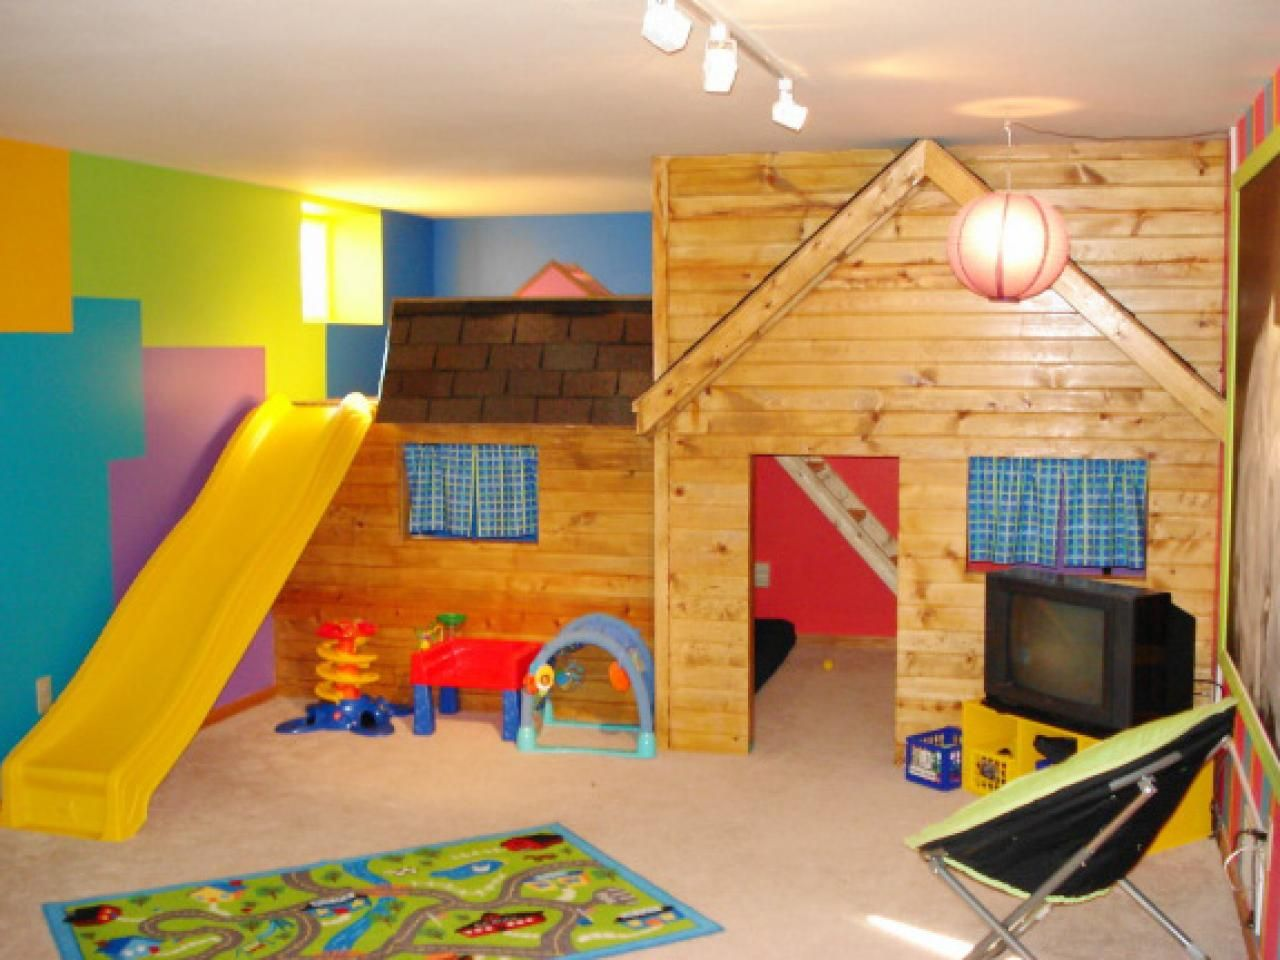 60 Fun Kids Playroom Ideas To Inspire You Indoor Playroom Creative Playroom Ideas Kids Playroom Decor